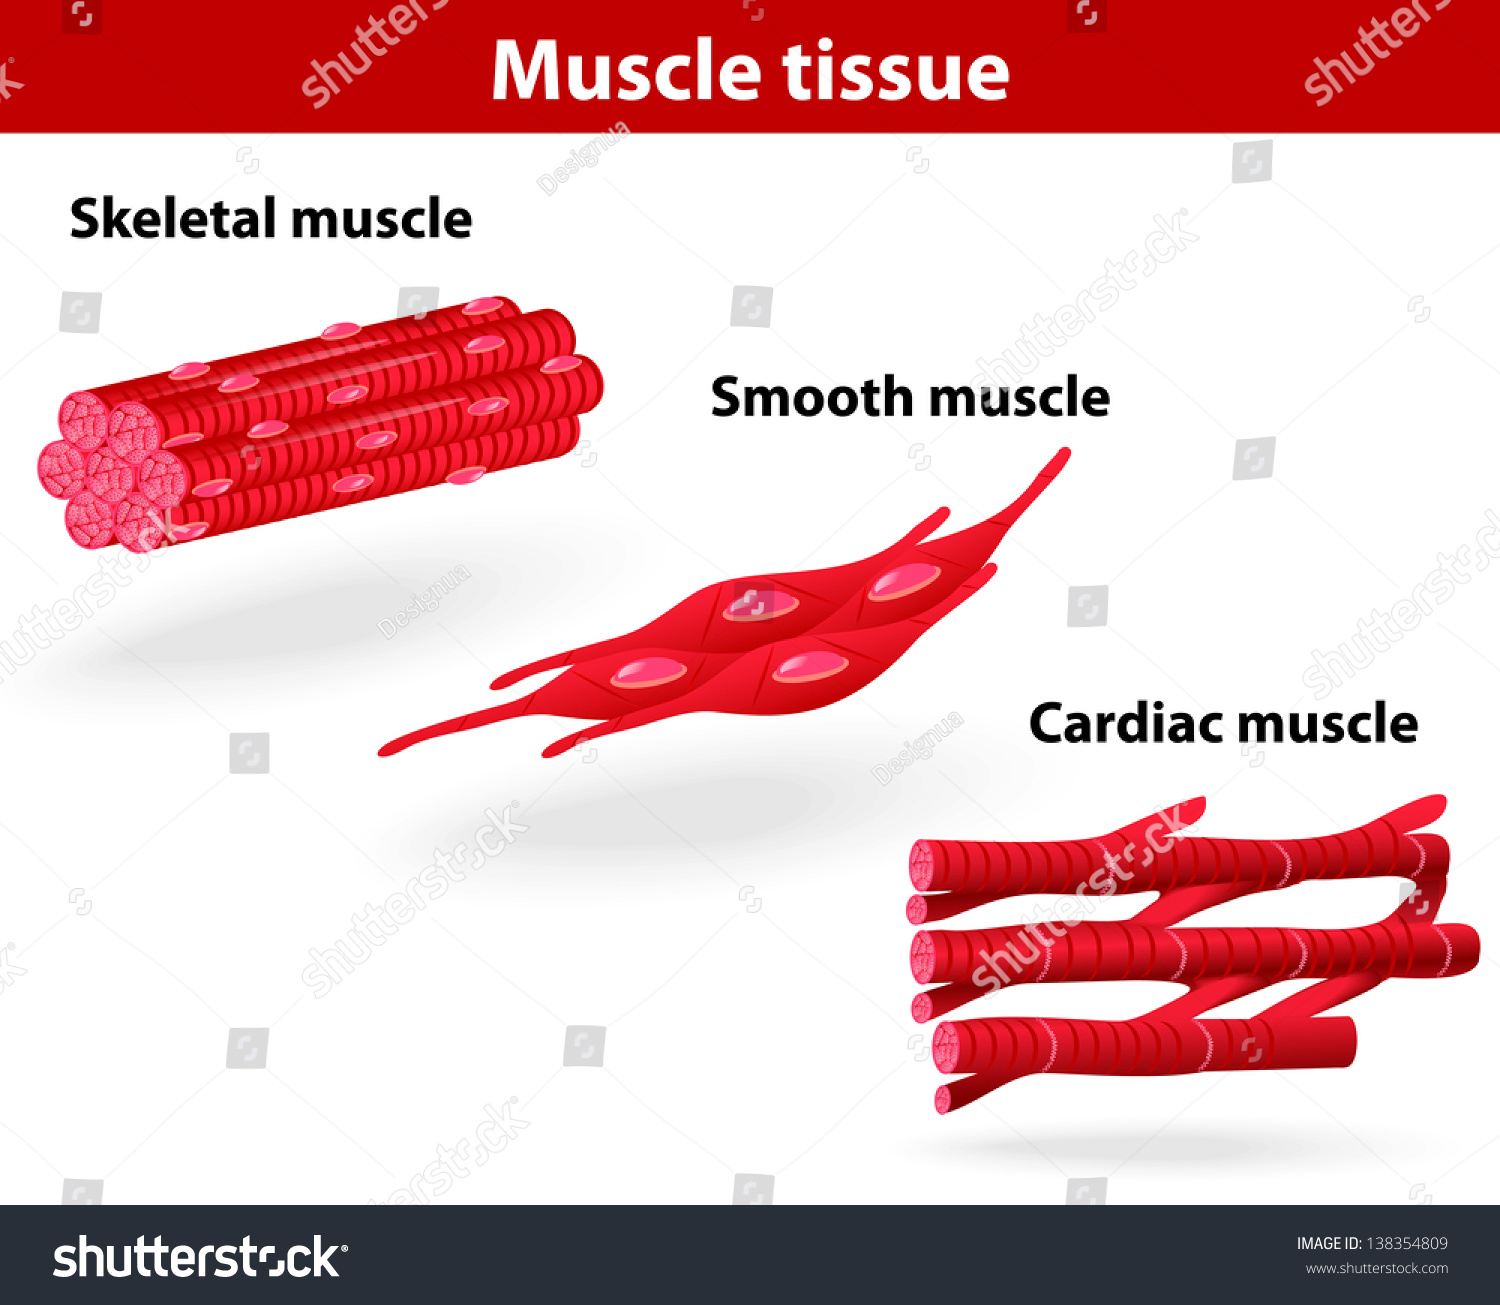 cardiac muscle labeled diagram 220v single phase wiring types tissue skeletal smooth stock